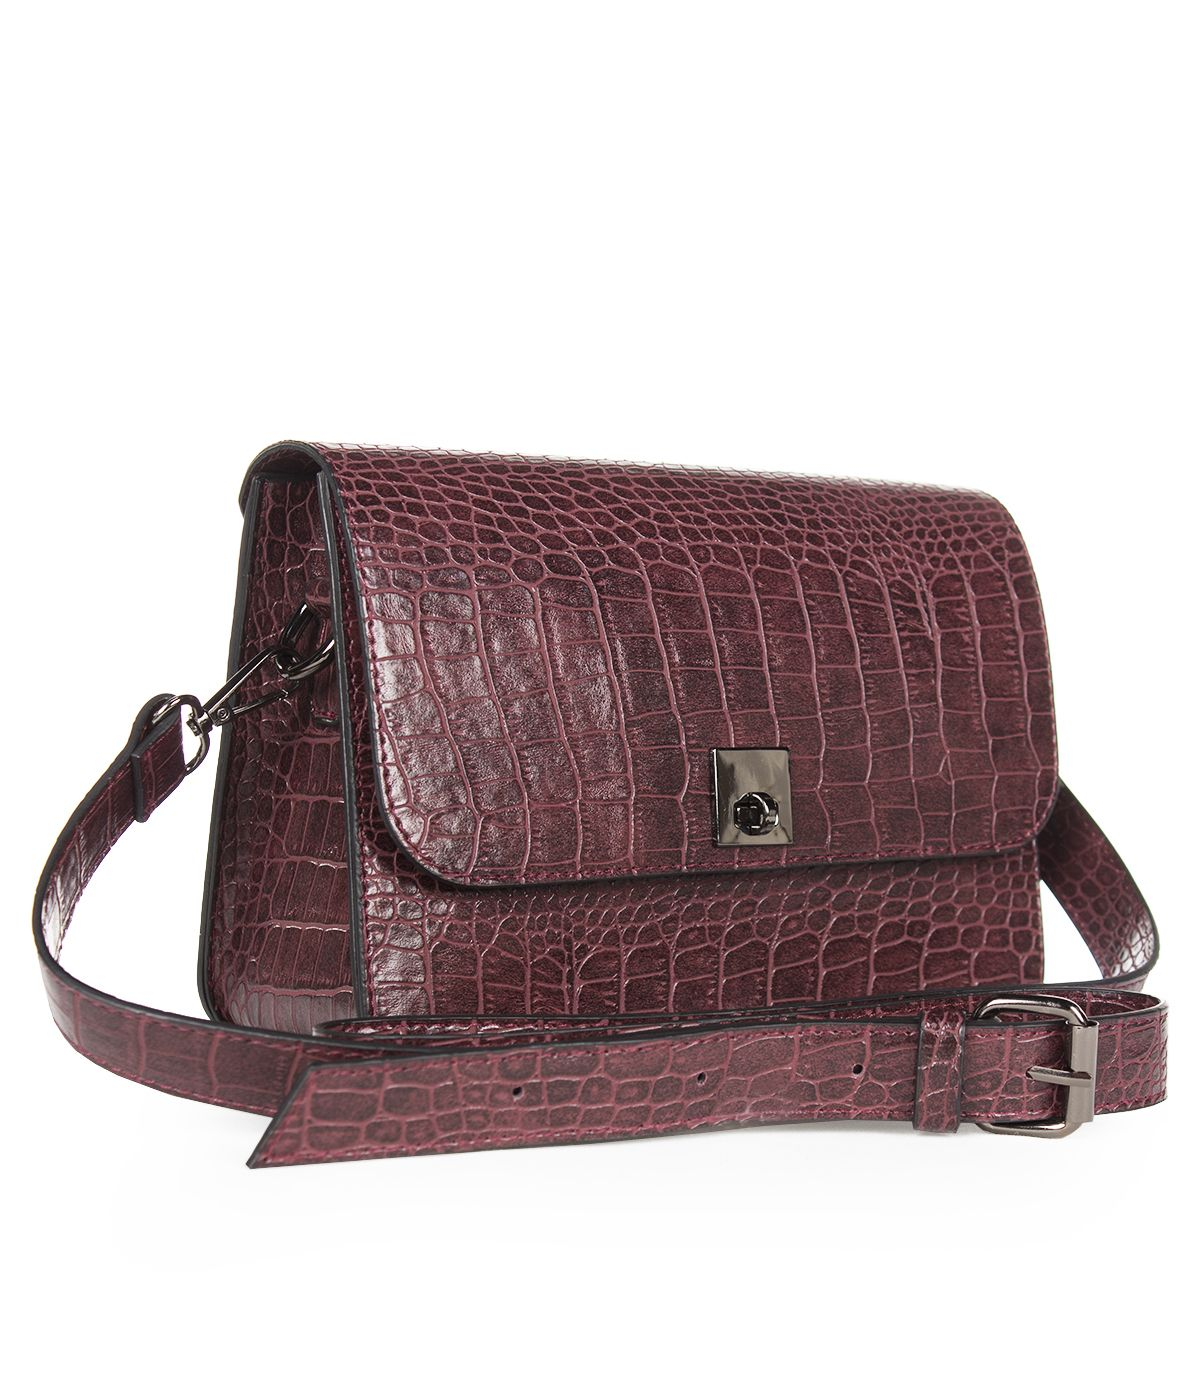 LEATHER BORDO  BAG WITH SNAKE SKIN IMITATION  2